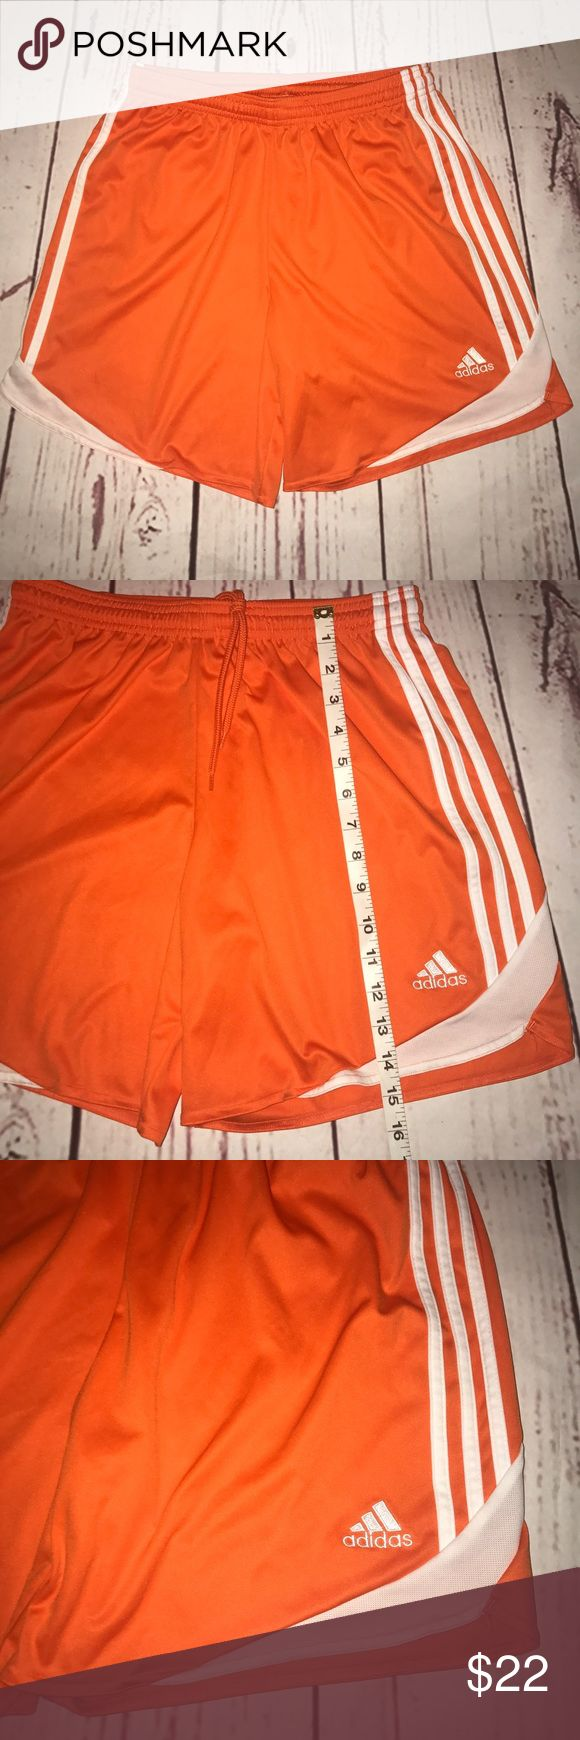 ADIDAS ORANGE MEDIUM ATHLETIC BASKETBALL SHORTS ADIDAS! Women's size medium. Tag has been cut out. Please check out the measurements in the photos. There is an elastic waistband with drawstring. Orange shorts with white stripes and logo! adidas Shorts